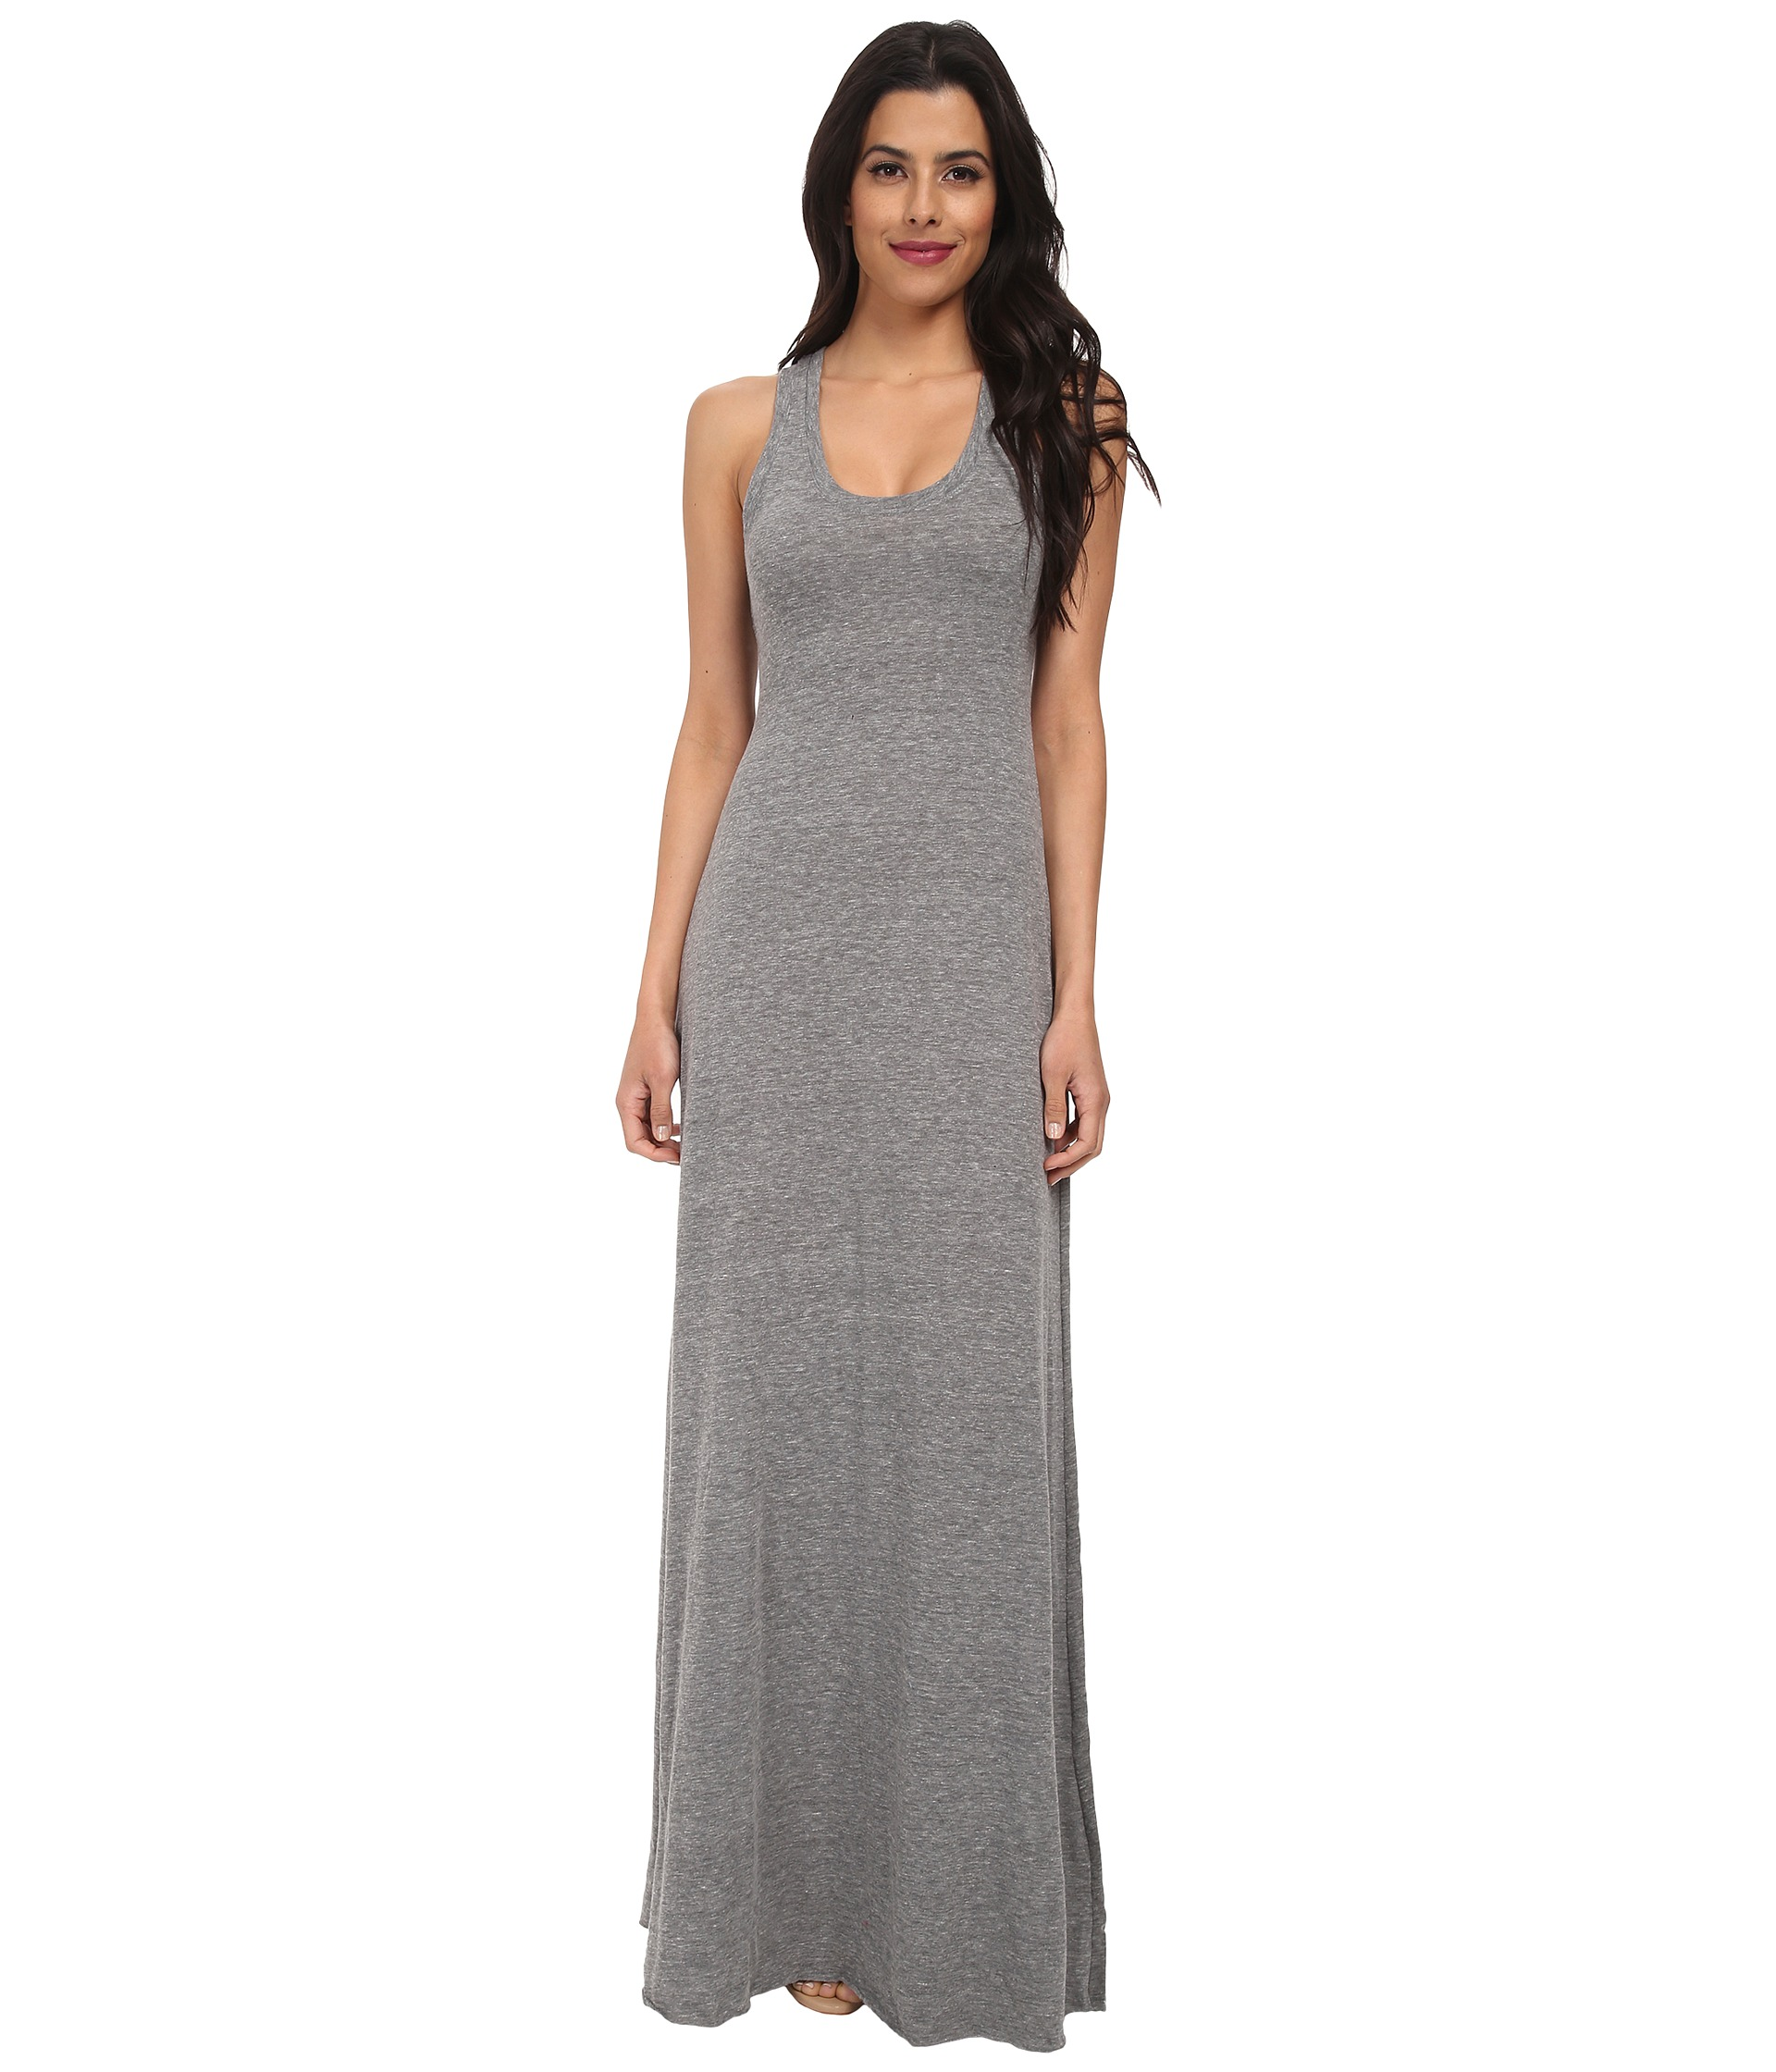 Alternative Racerback Maxi Dress - Zappos.com Free Shipping BOTH Ways